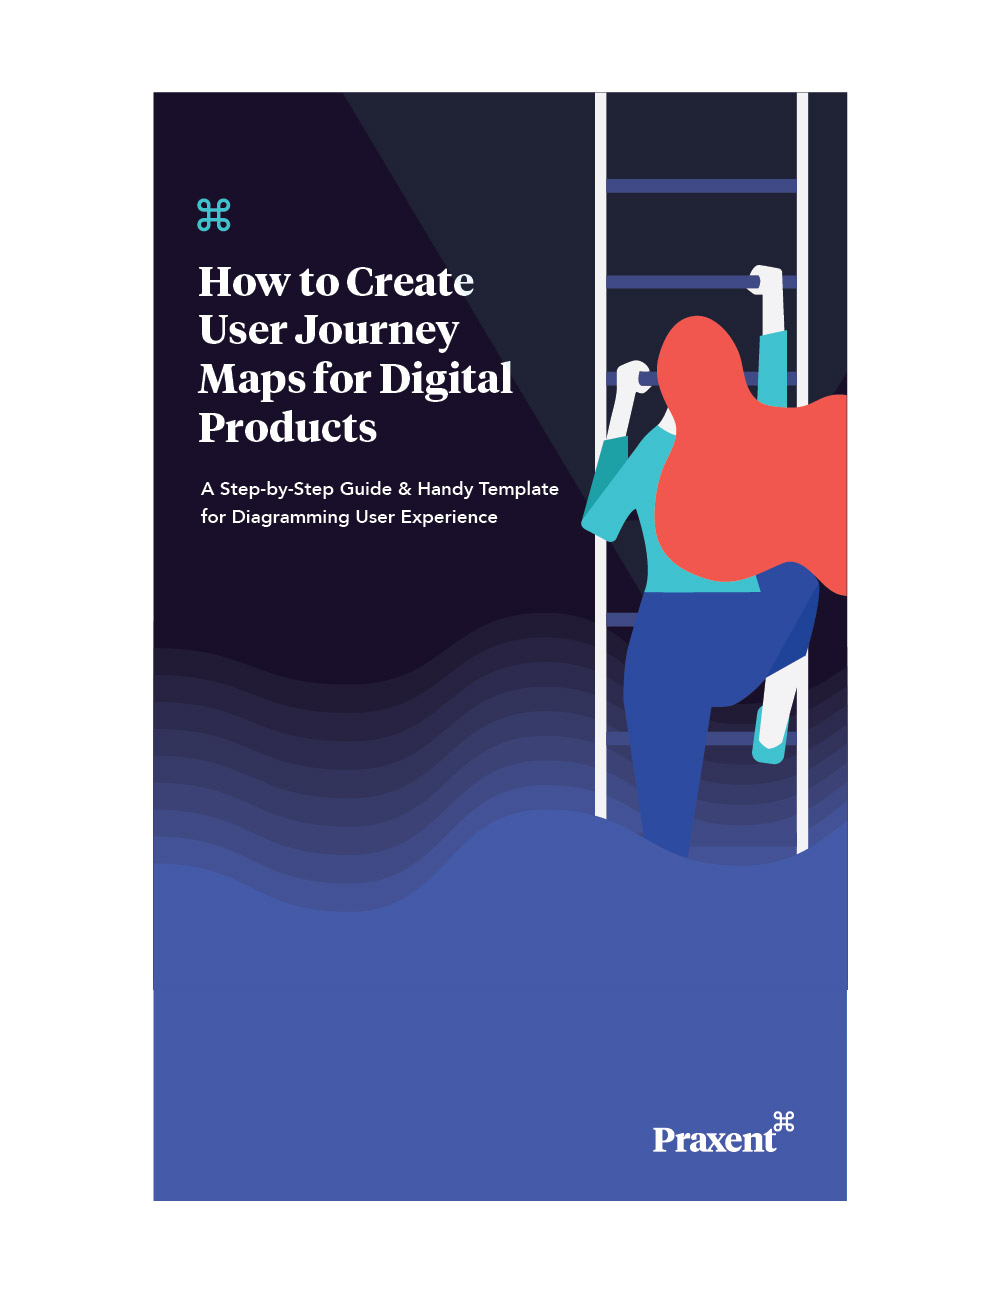 Download Praxent user journey map template and ebook Praxent